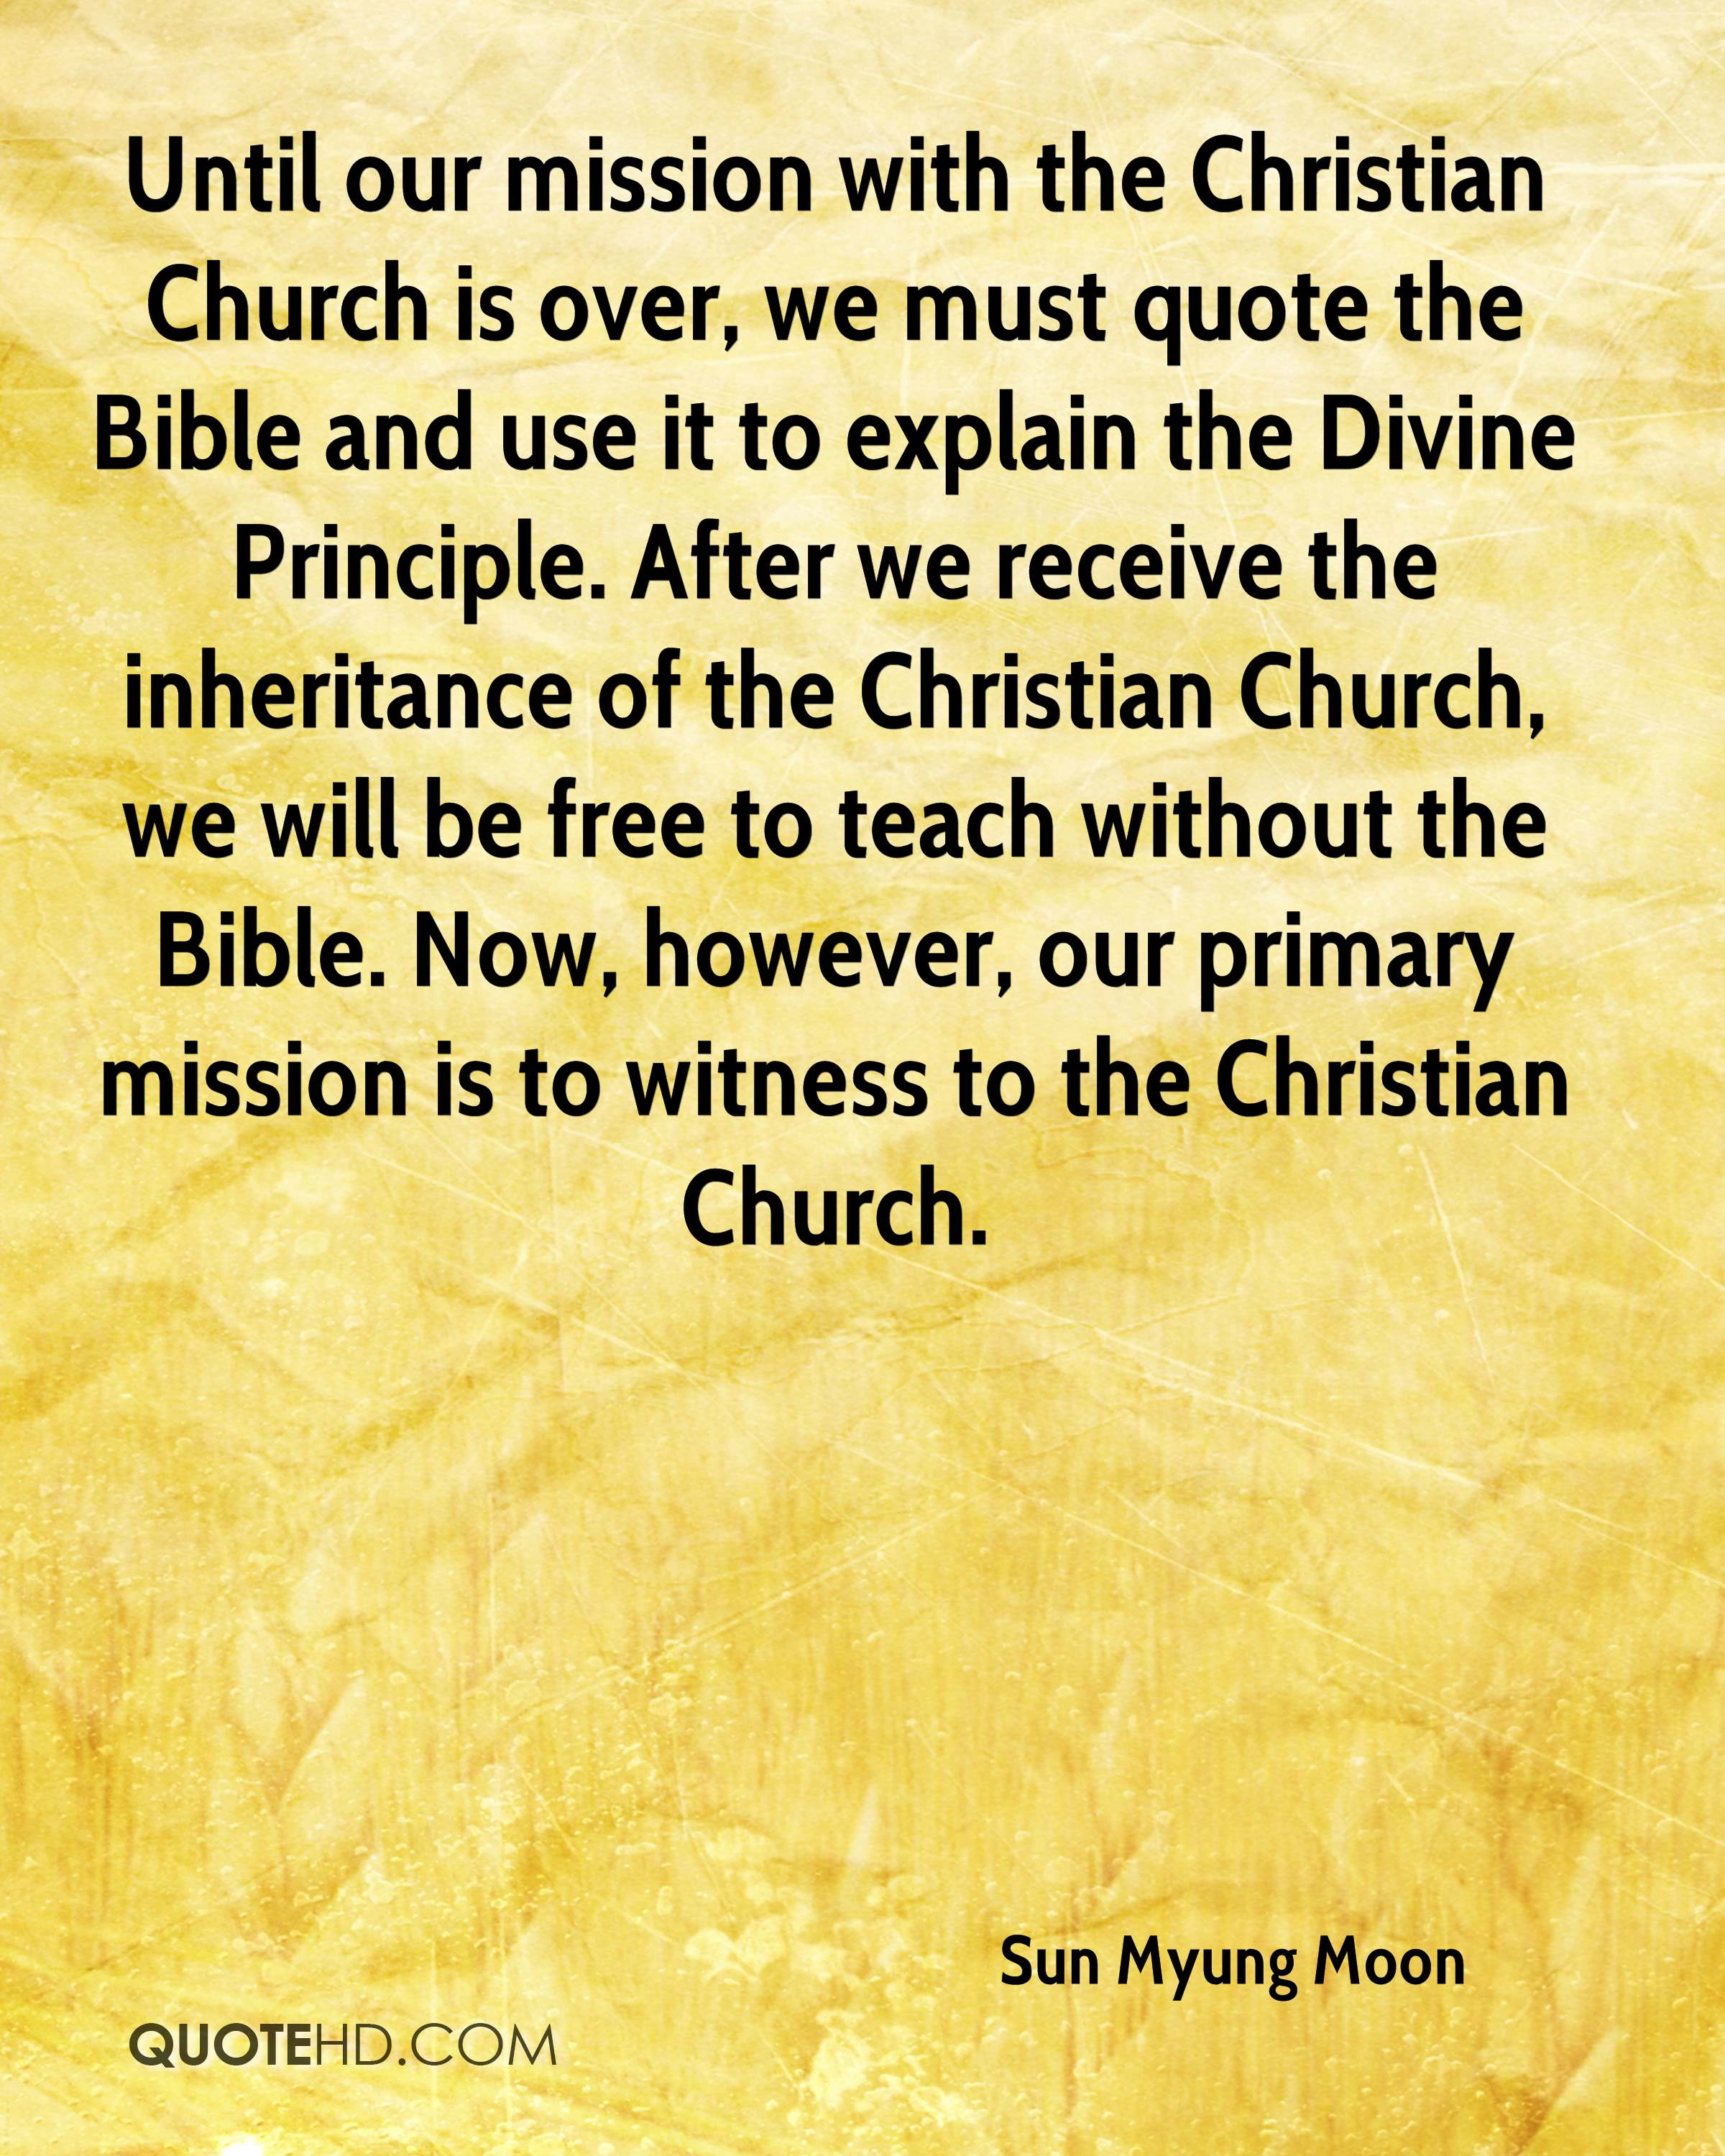 Until our mission with the Christian Church is over, we must quote the Bible and use it to explain the Divine Principle. After we receive the inheritance of the Christian Church, we will be free to teach without the Bible. Now, however, our primary mission is to witness to the Christian Church.